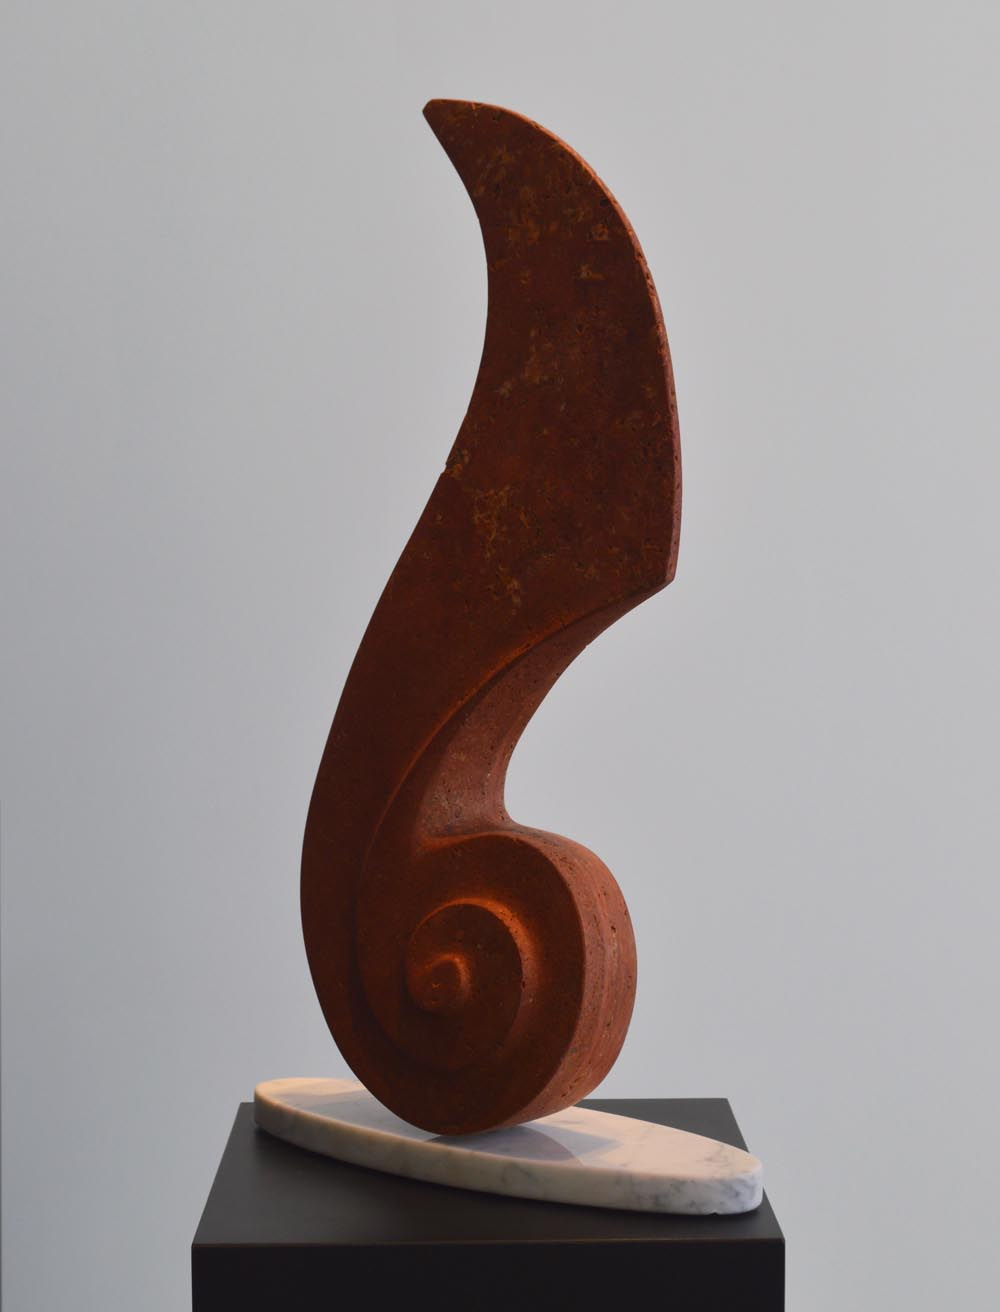 michael binkley sculptor stone sculpture abstract fine art marble vancouver canada